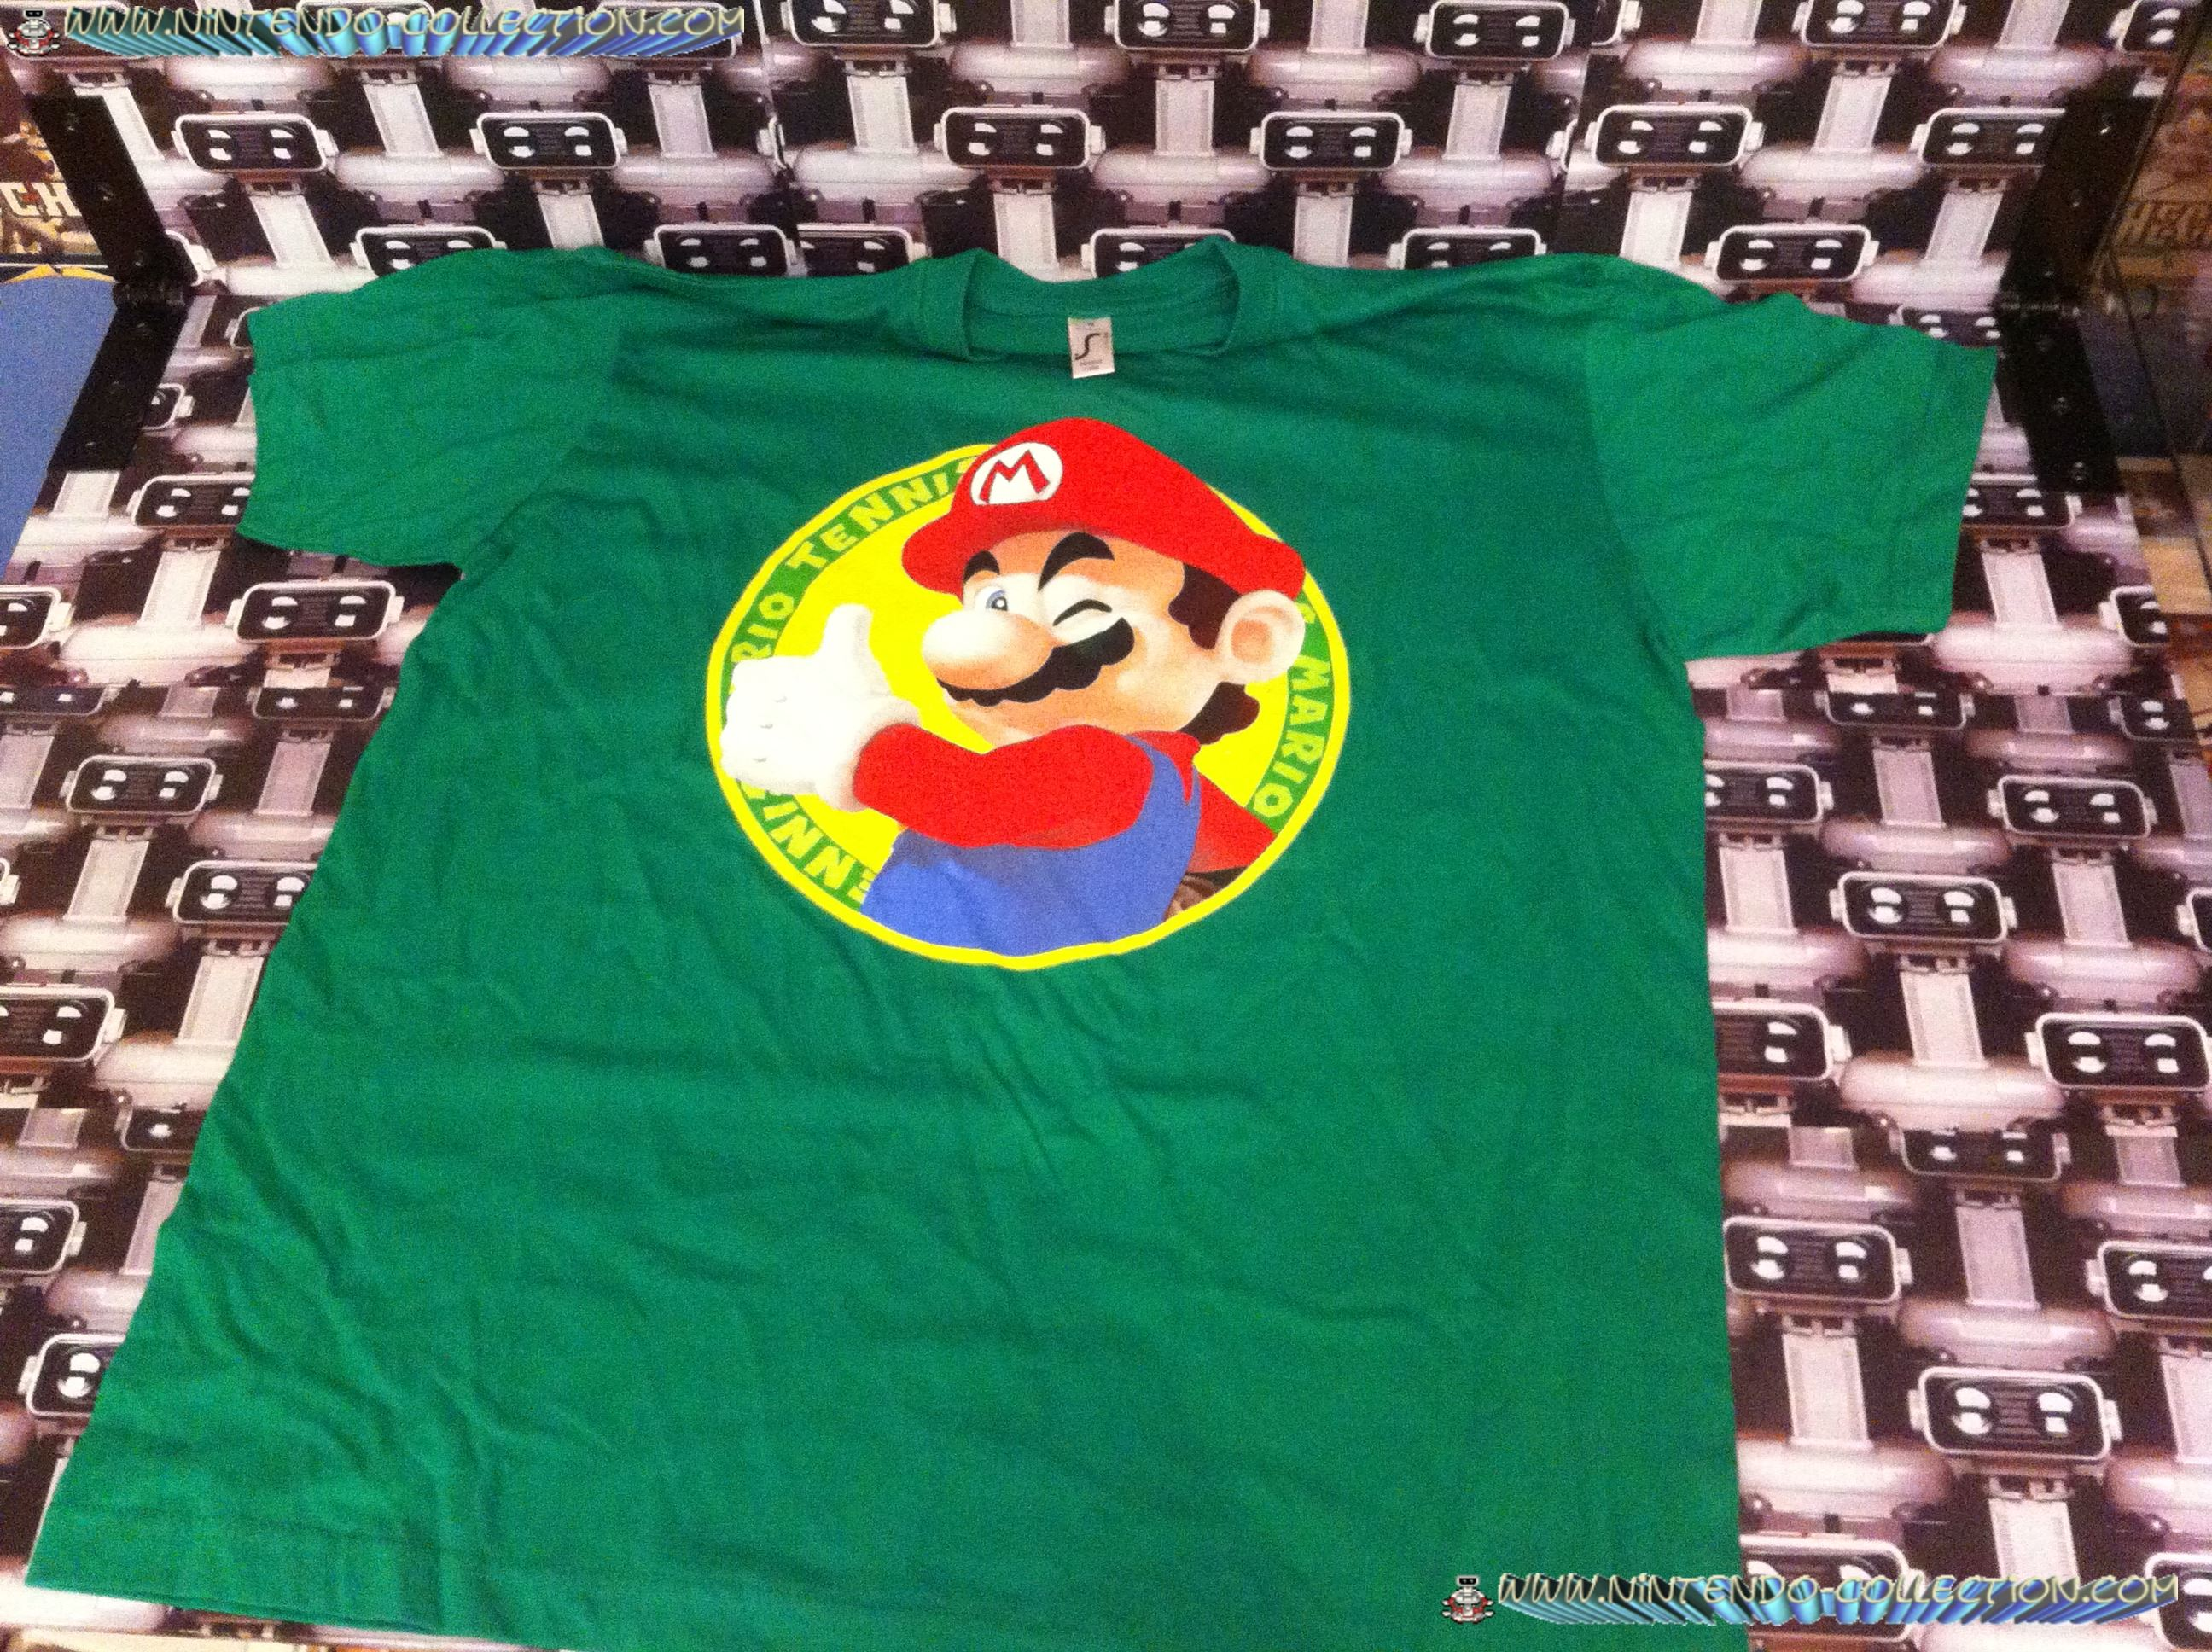 www.nintendo-collection.com - Tee-Shirt de Pre-Reservation de Mario Tennis Open - Nor For Resale - D